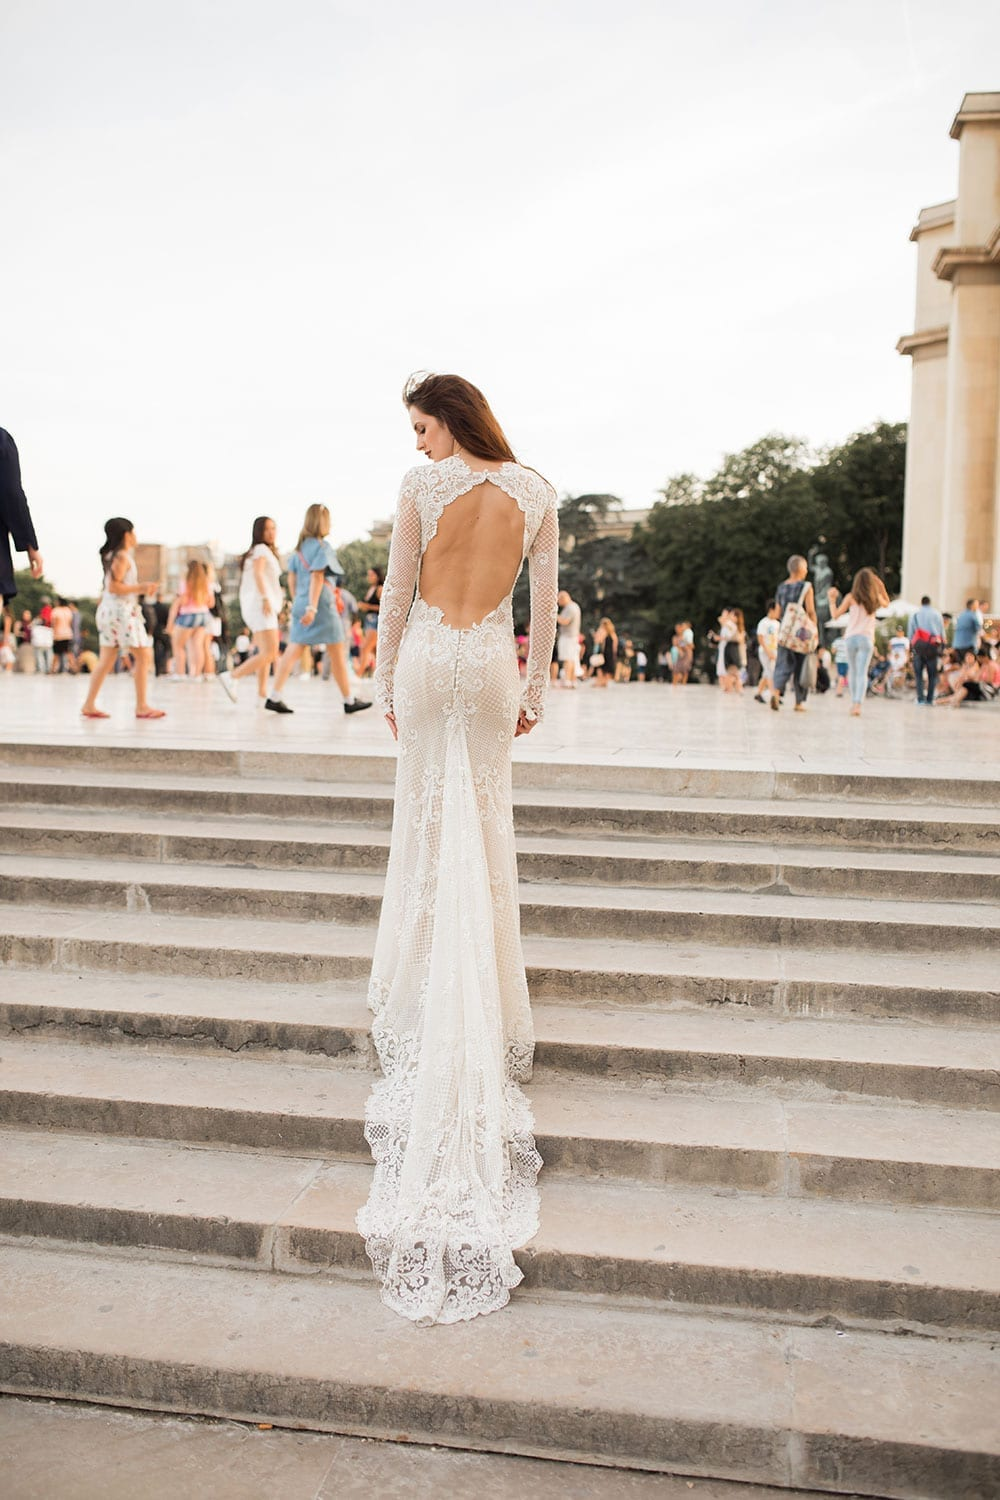 Model wearing Vinka Design Hayley Wedding Dress, a Backless Long Sleeve Lace Wedding Gown on marble steps in Paris